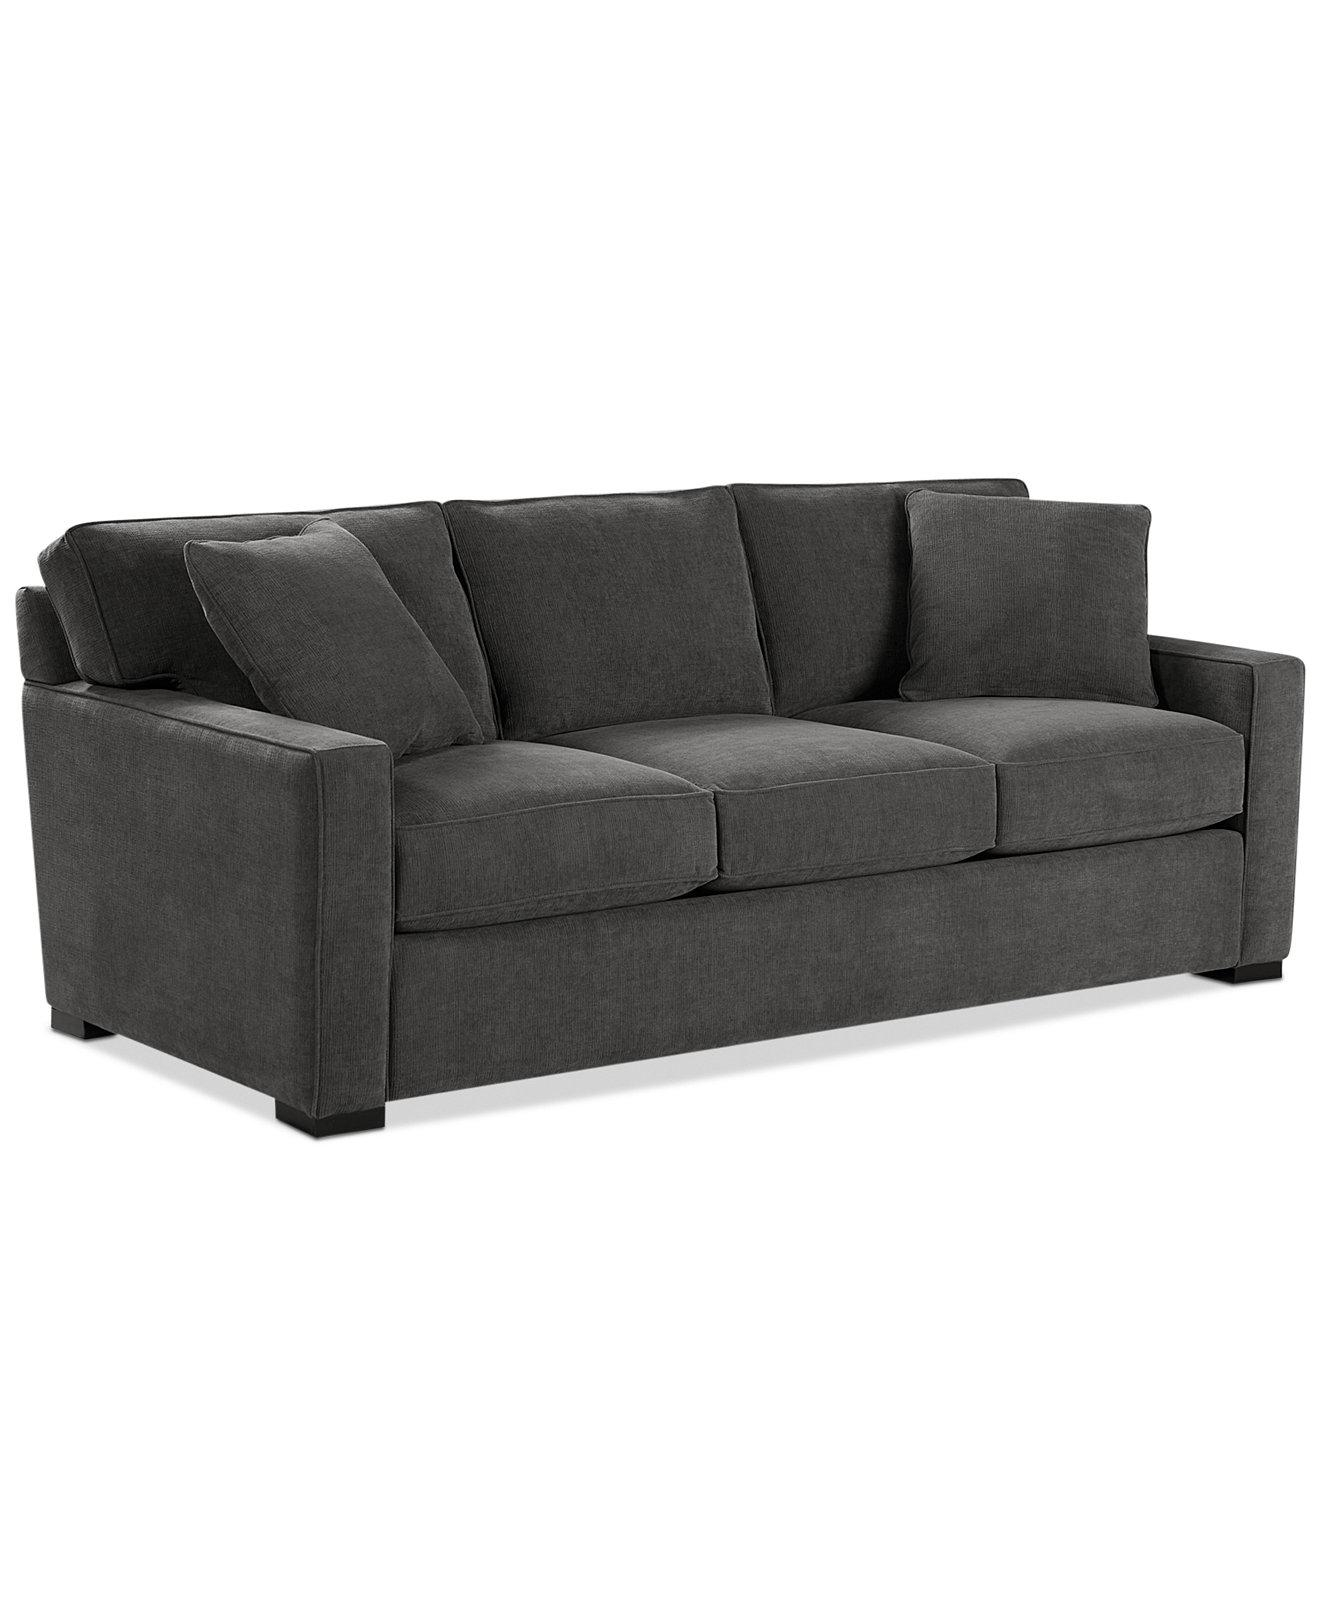 Sofas Center : Sectional Sofa Macys Archaicawful Pictures Ideas Regarding Bradley Sectional Sofas (View 17 of 20)